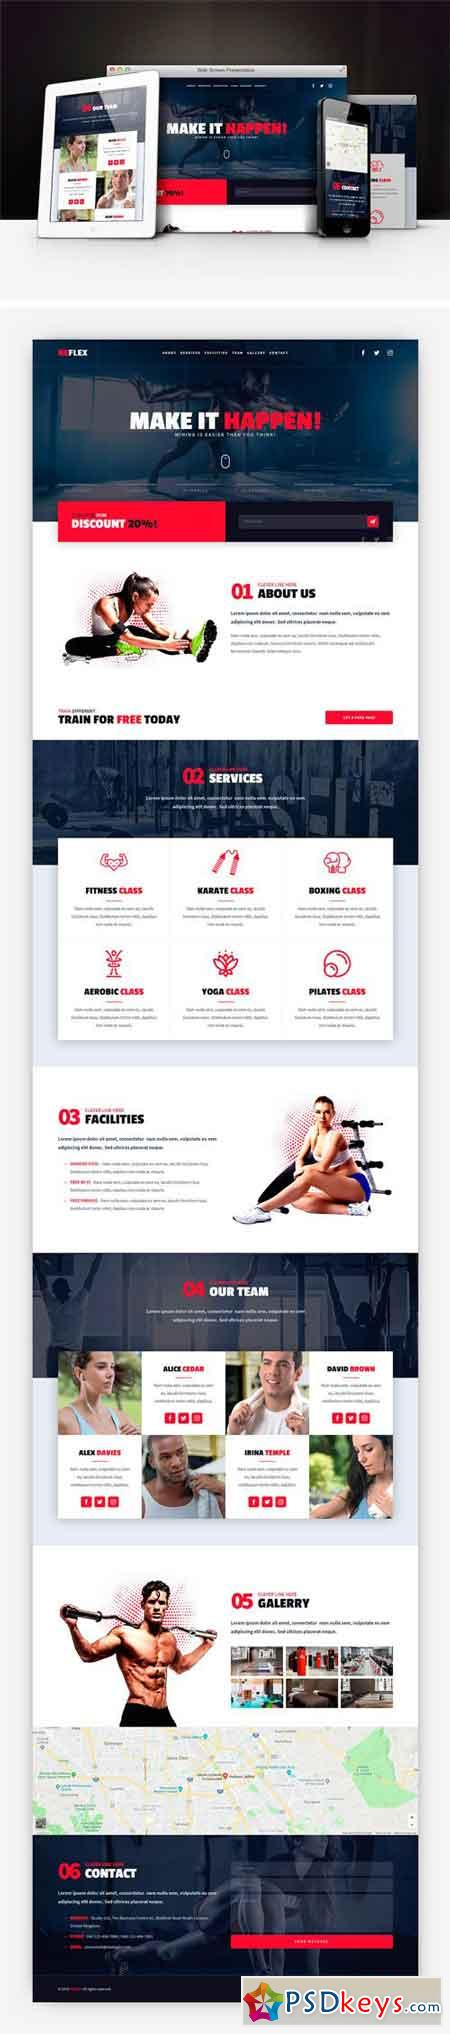 Reflex - Fitness Gym Muse Template 2350855